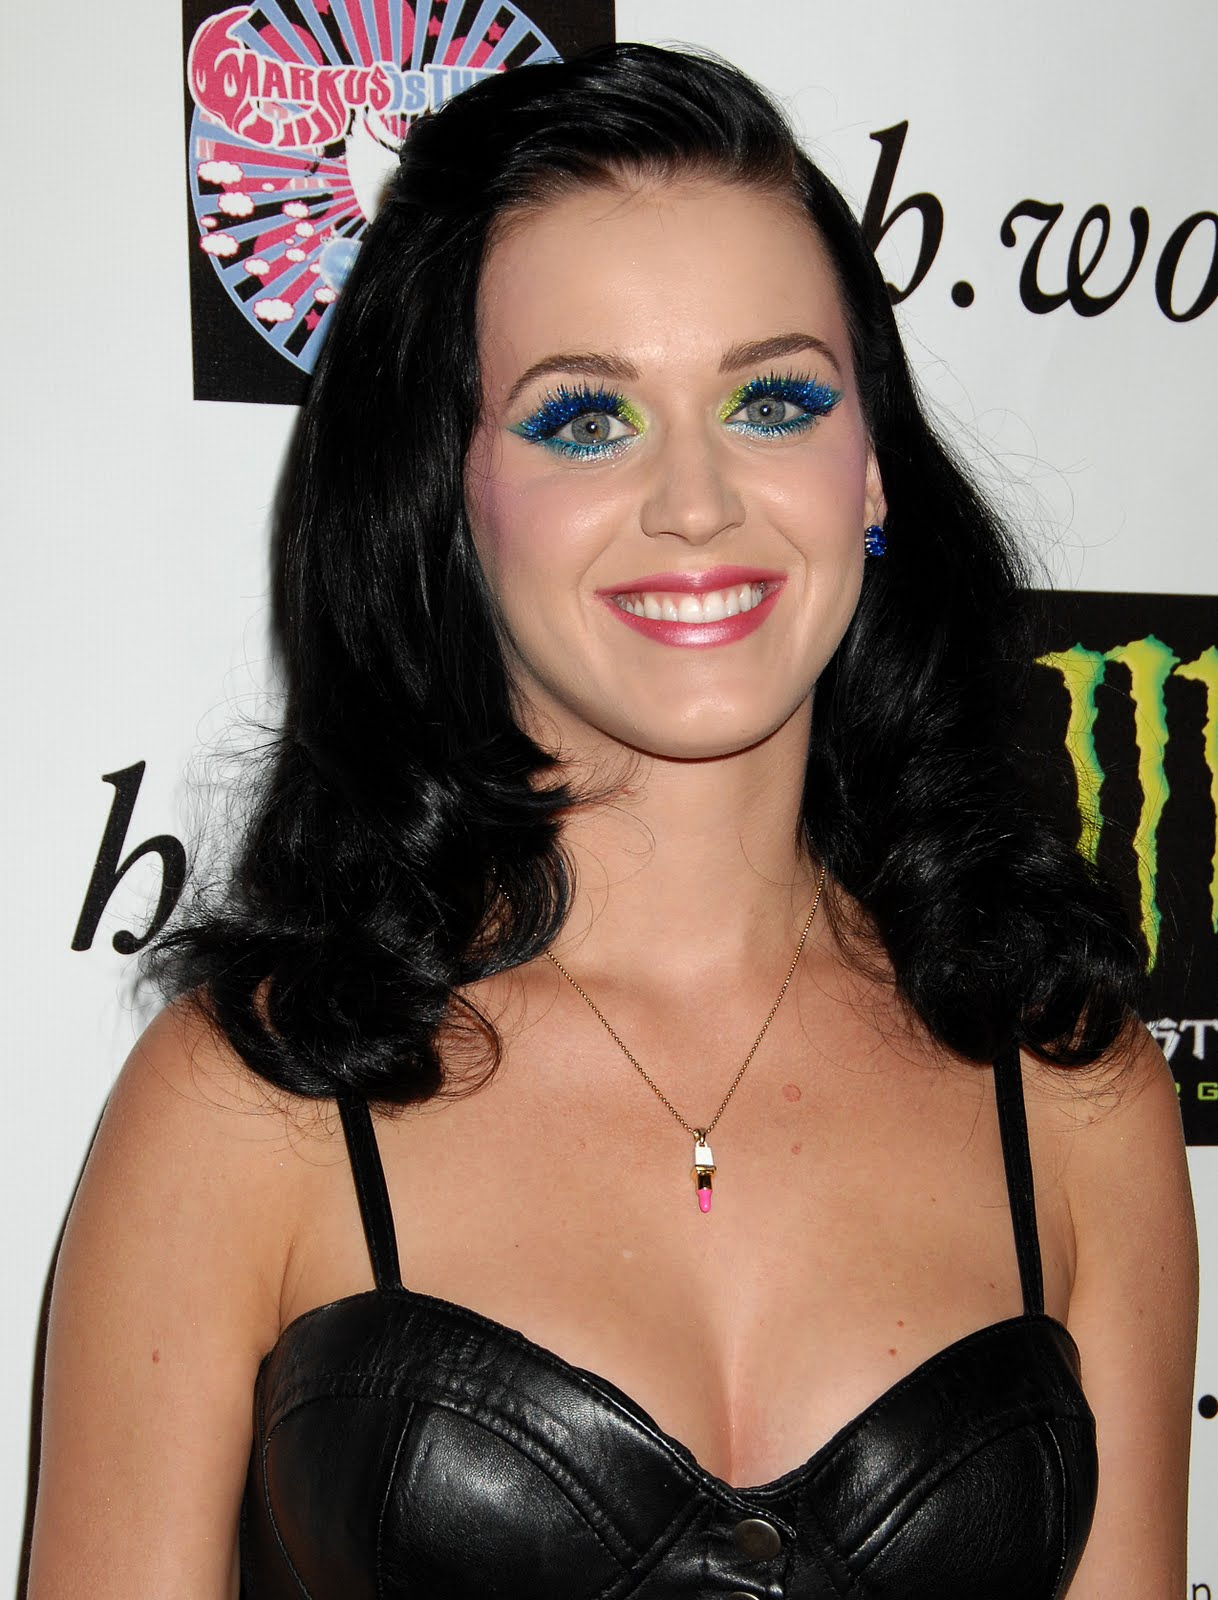 http://3.bp.blogspot.com/-Ji-3ngMubvs/TwMFqGBFFAI/AAAAAAAAMjY/e_FJ48RbtsA/s1600/katy_perry_in_leather_018.jpg